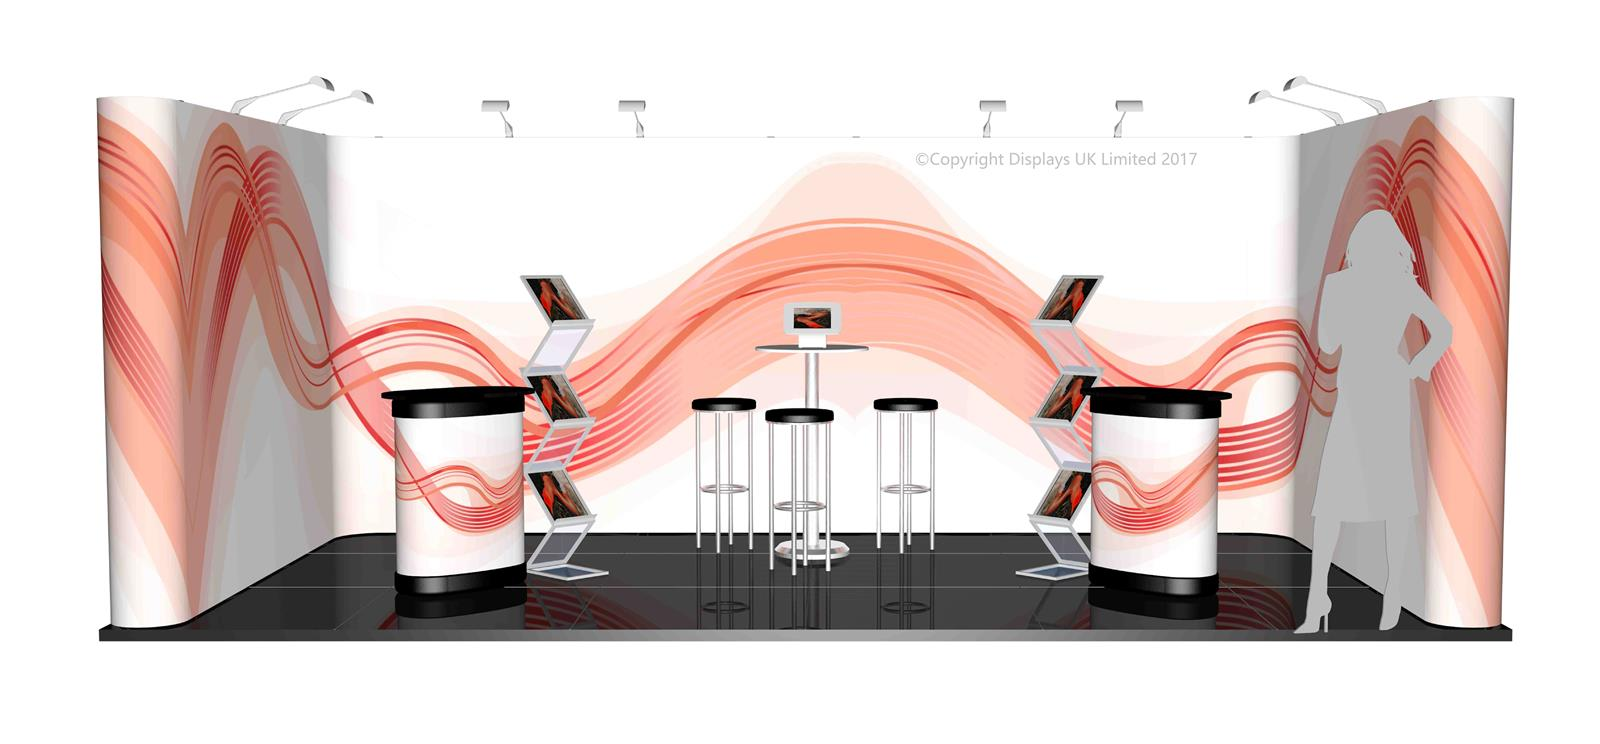 3m x 6m Linked Pop Up Exhibition Stand - Kit 33 - P6x3-1aS